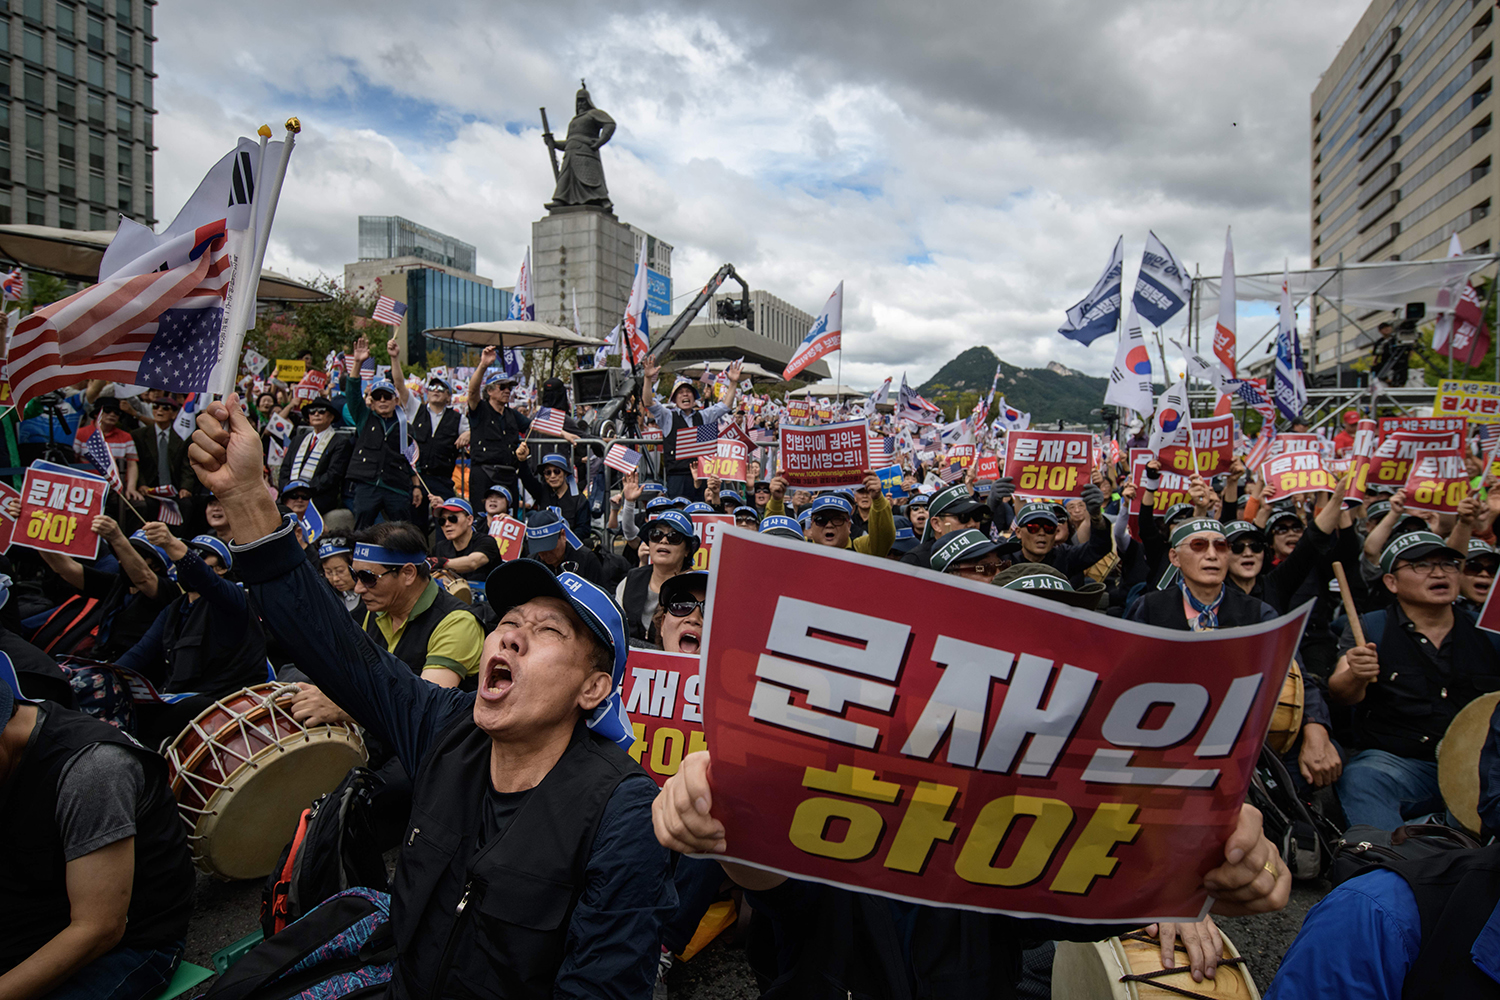 Anti-government protesters shout slogans and wave placards at a rally calling for president Moon Jae-in to step down in central Seoul on Oct. 3. Moon's approval rating recently hit a record low after he appointed a scandal-tainted ally as justice minister. ED JONES/AFP via Getty Images